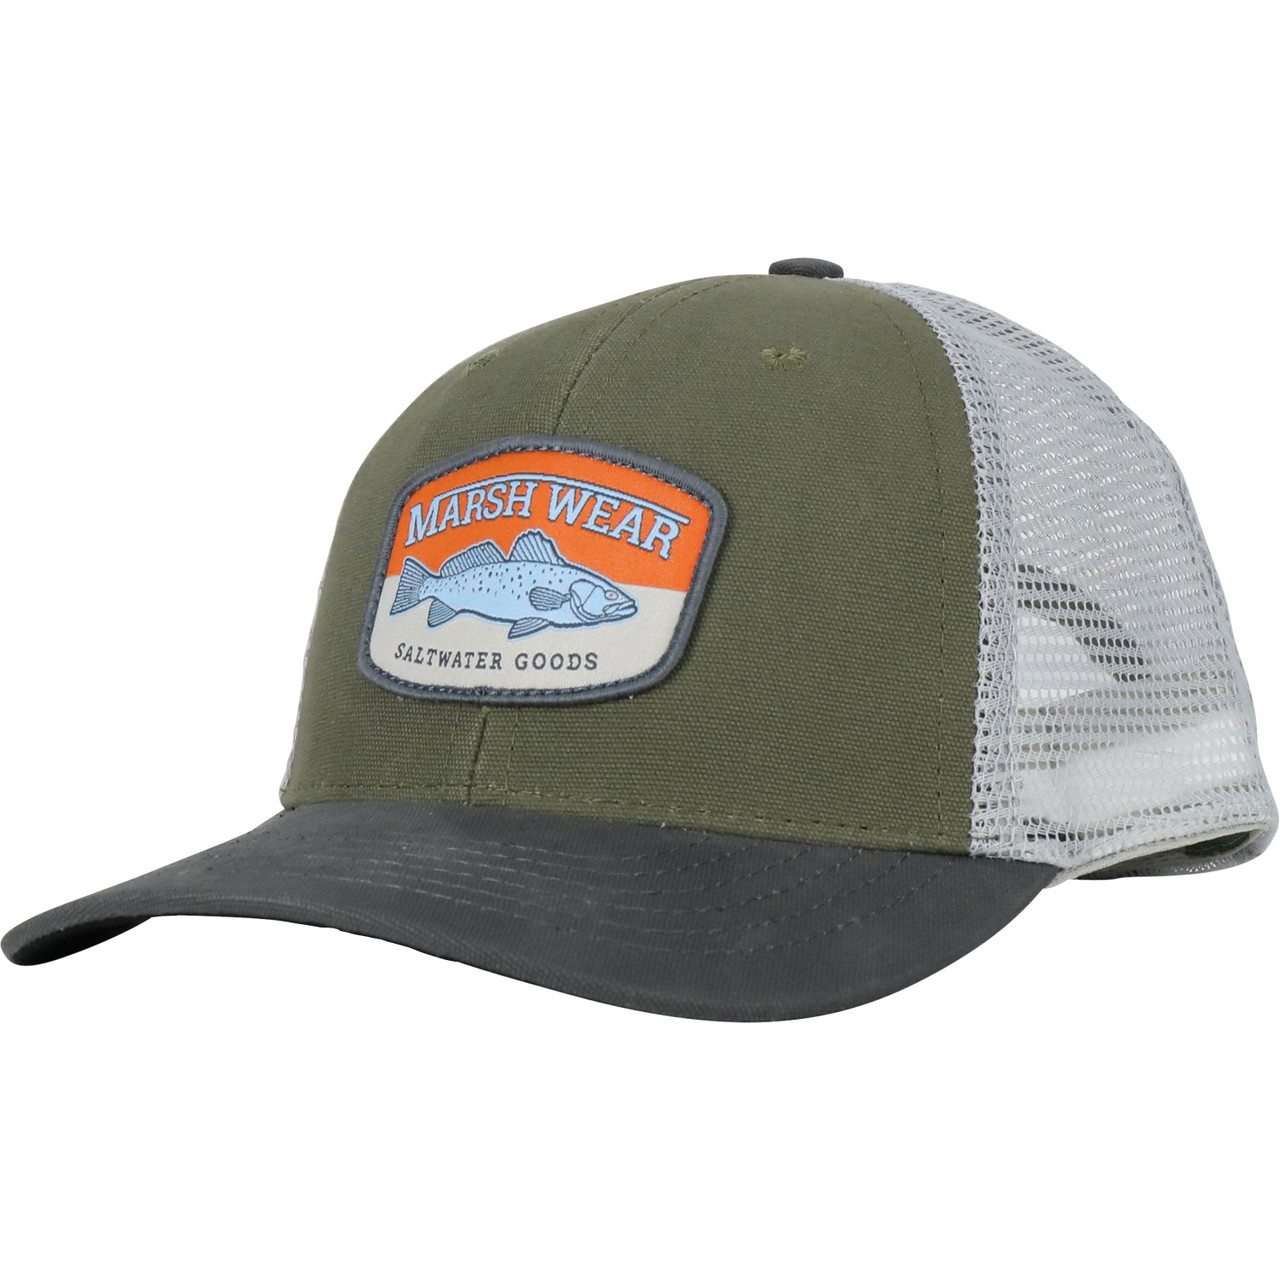 Marsh Wear MWC1029 Speckled Trucker Hat Jalapeno Green - Angled